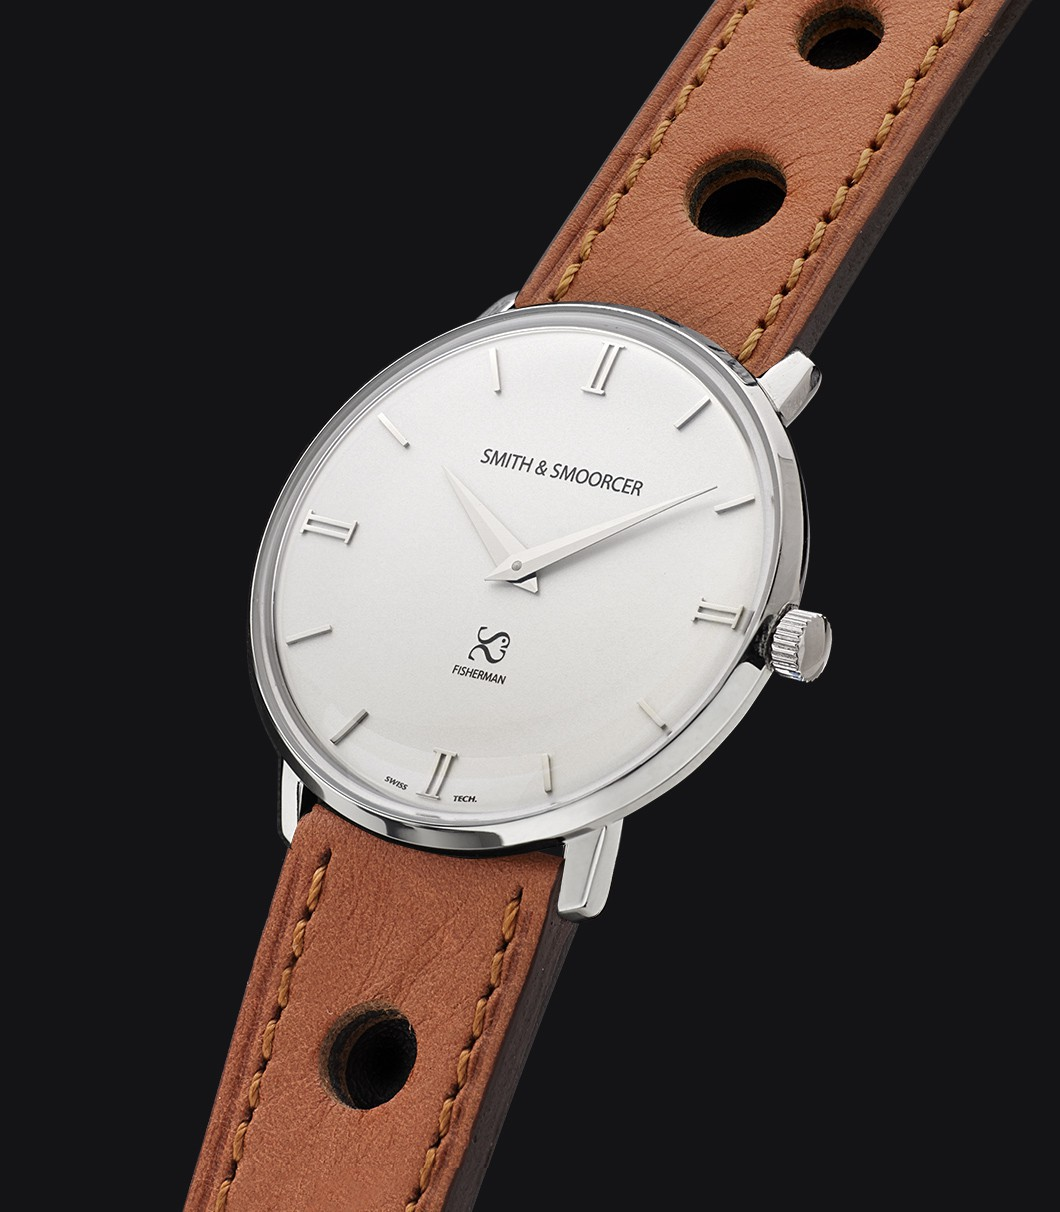 White Dial Watch Fisherman Snowy Racing Desert